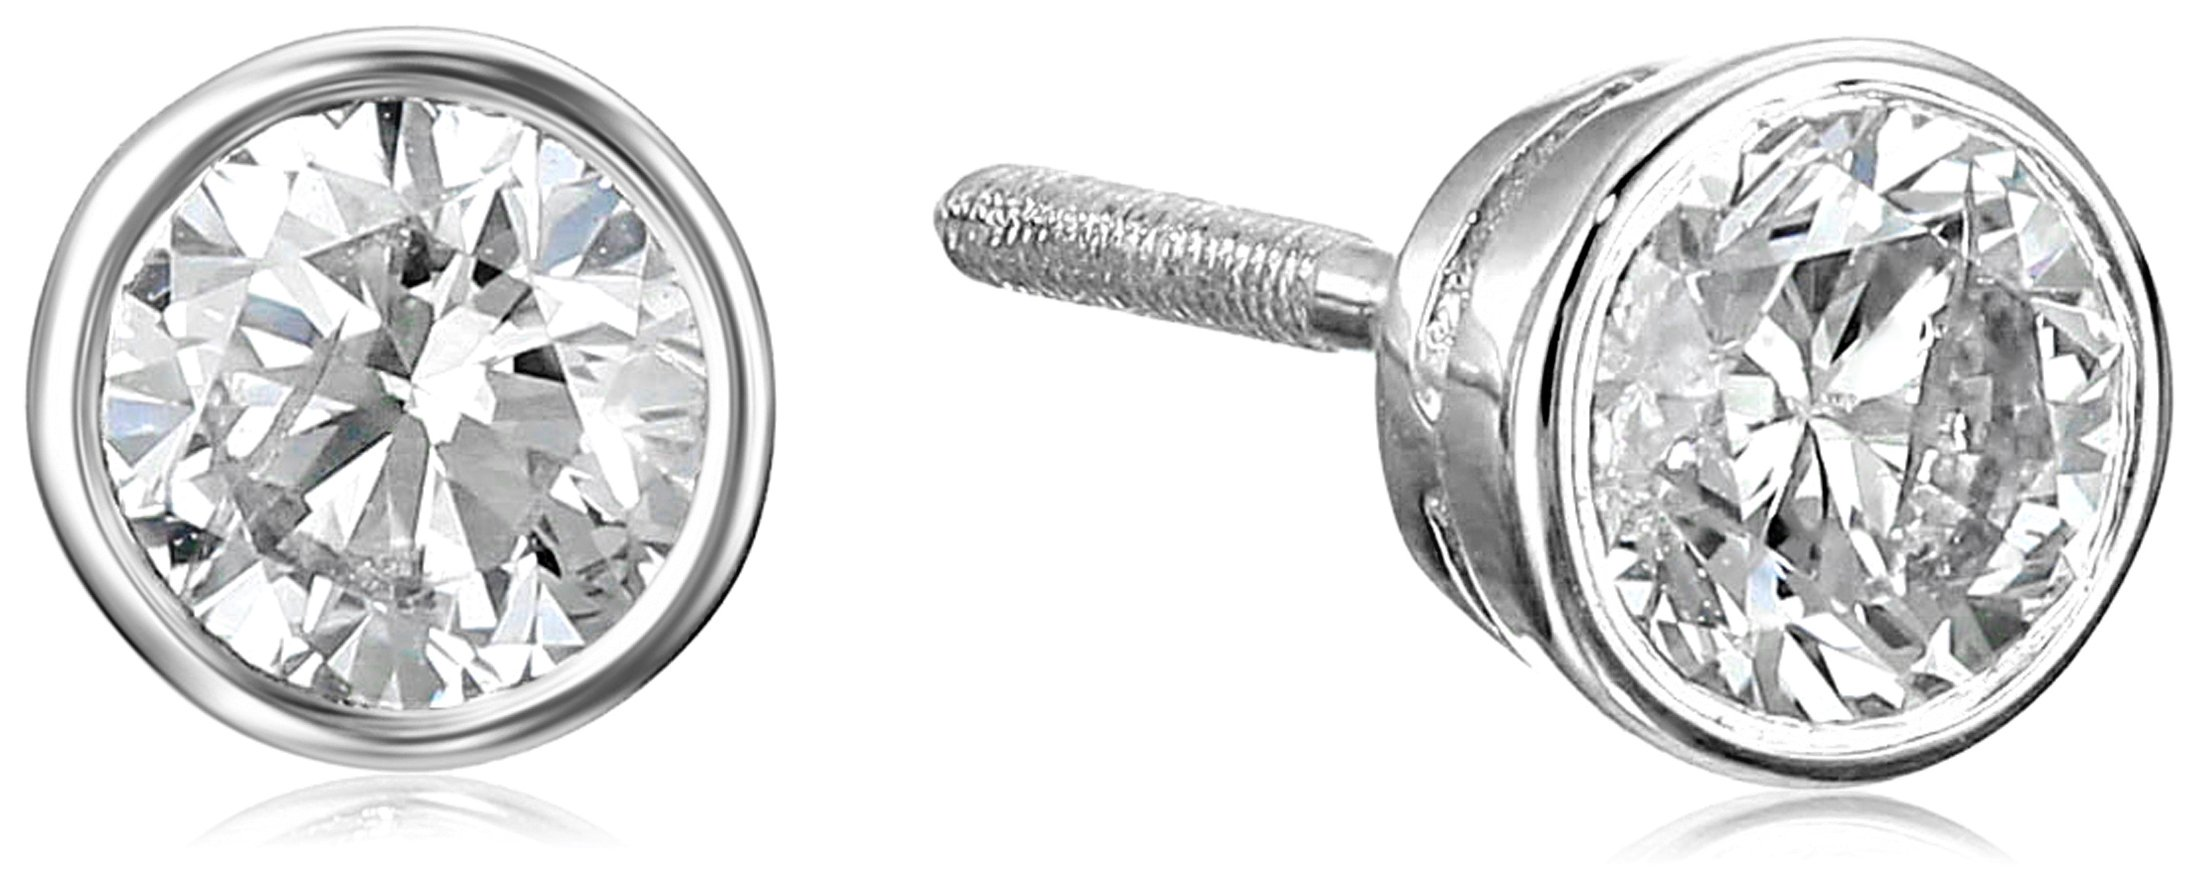 14k White Gold Bezel Set Diamond with Screw Post and Back Stud Earrings (1cttw, J-K Color, I1-I2 Clarity)